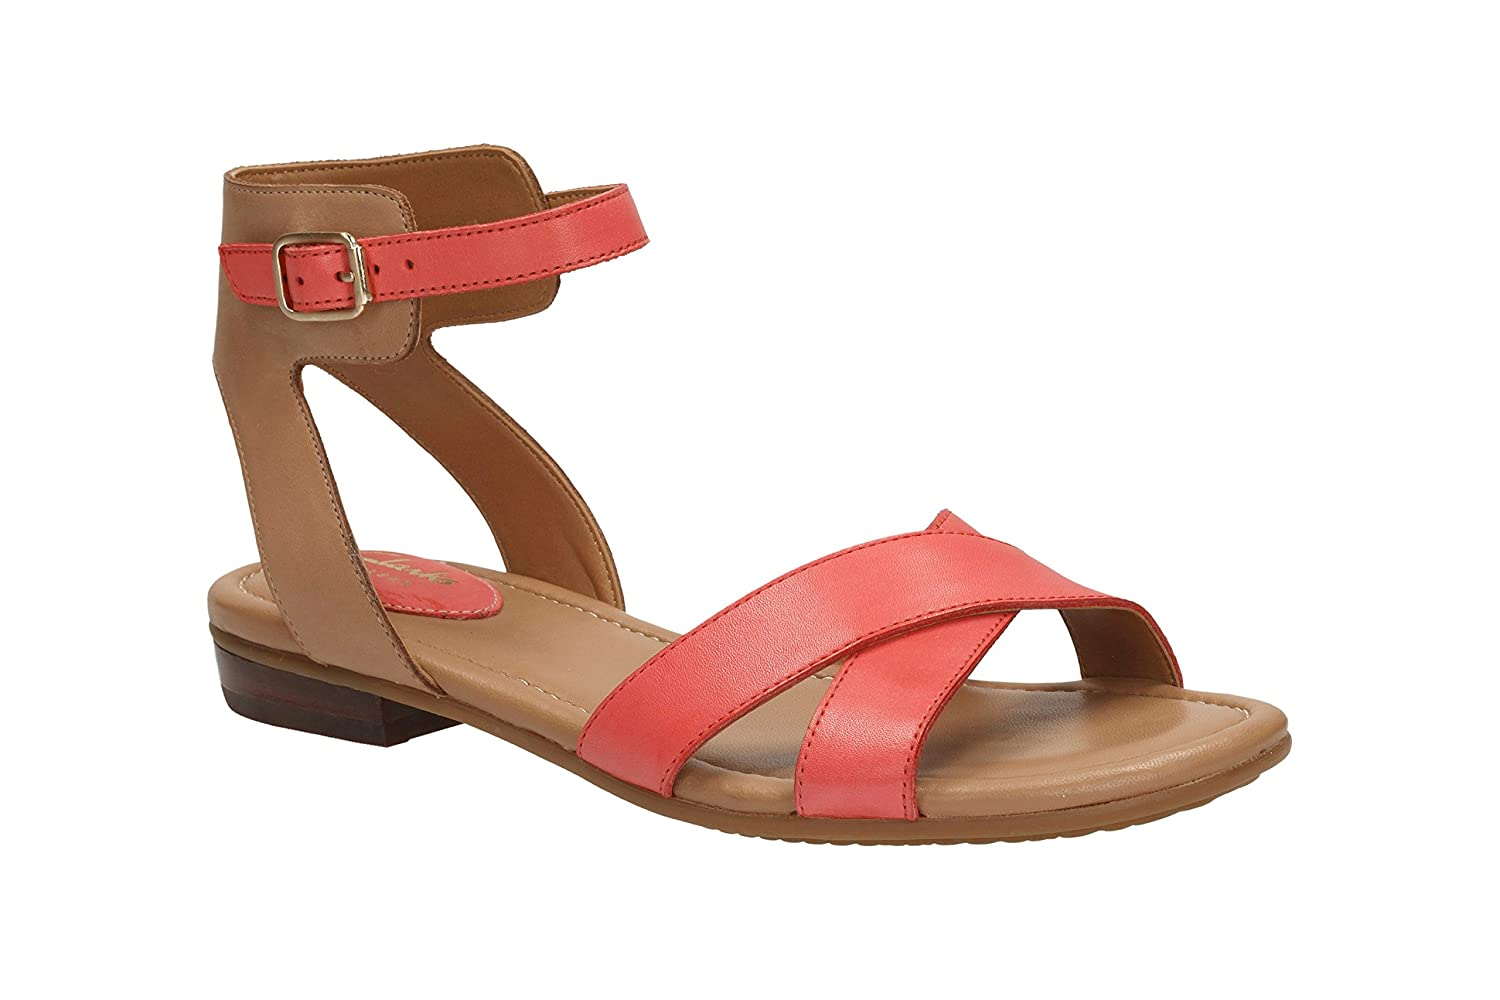 249fde45ebed Clarks Womens Viveca Zeal Leather Sandals In Coral Wide Fit Size 4E   Amazon.co.uk  Shoes   Bags